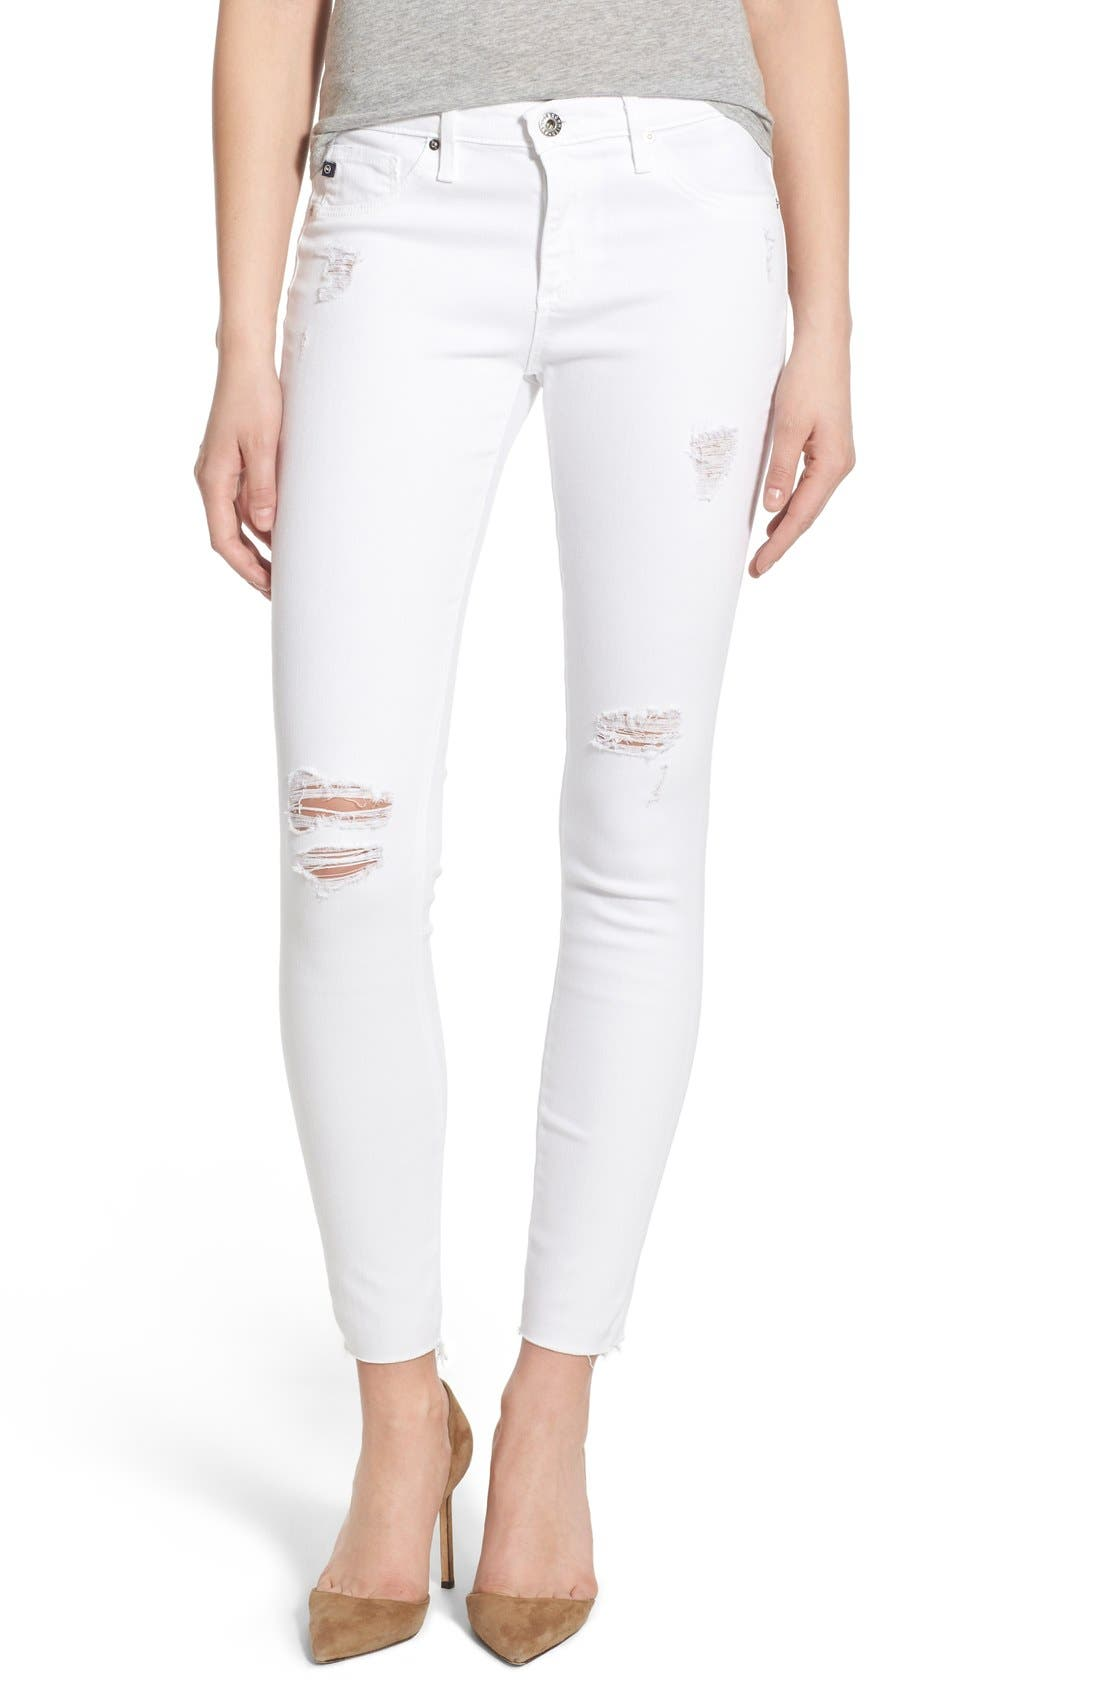 AG, 'The Legging' Cutoff Ankle Skinny Jeans, Main thumbnail 1, color, 100